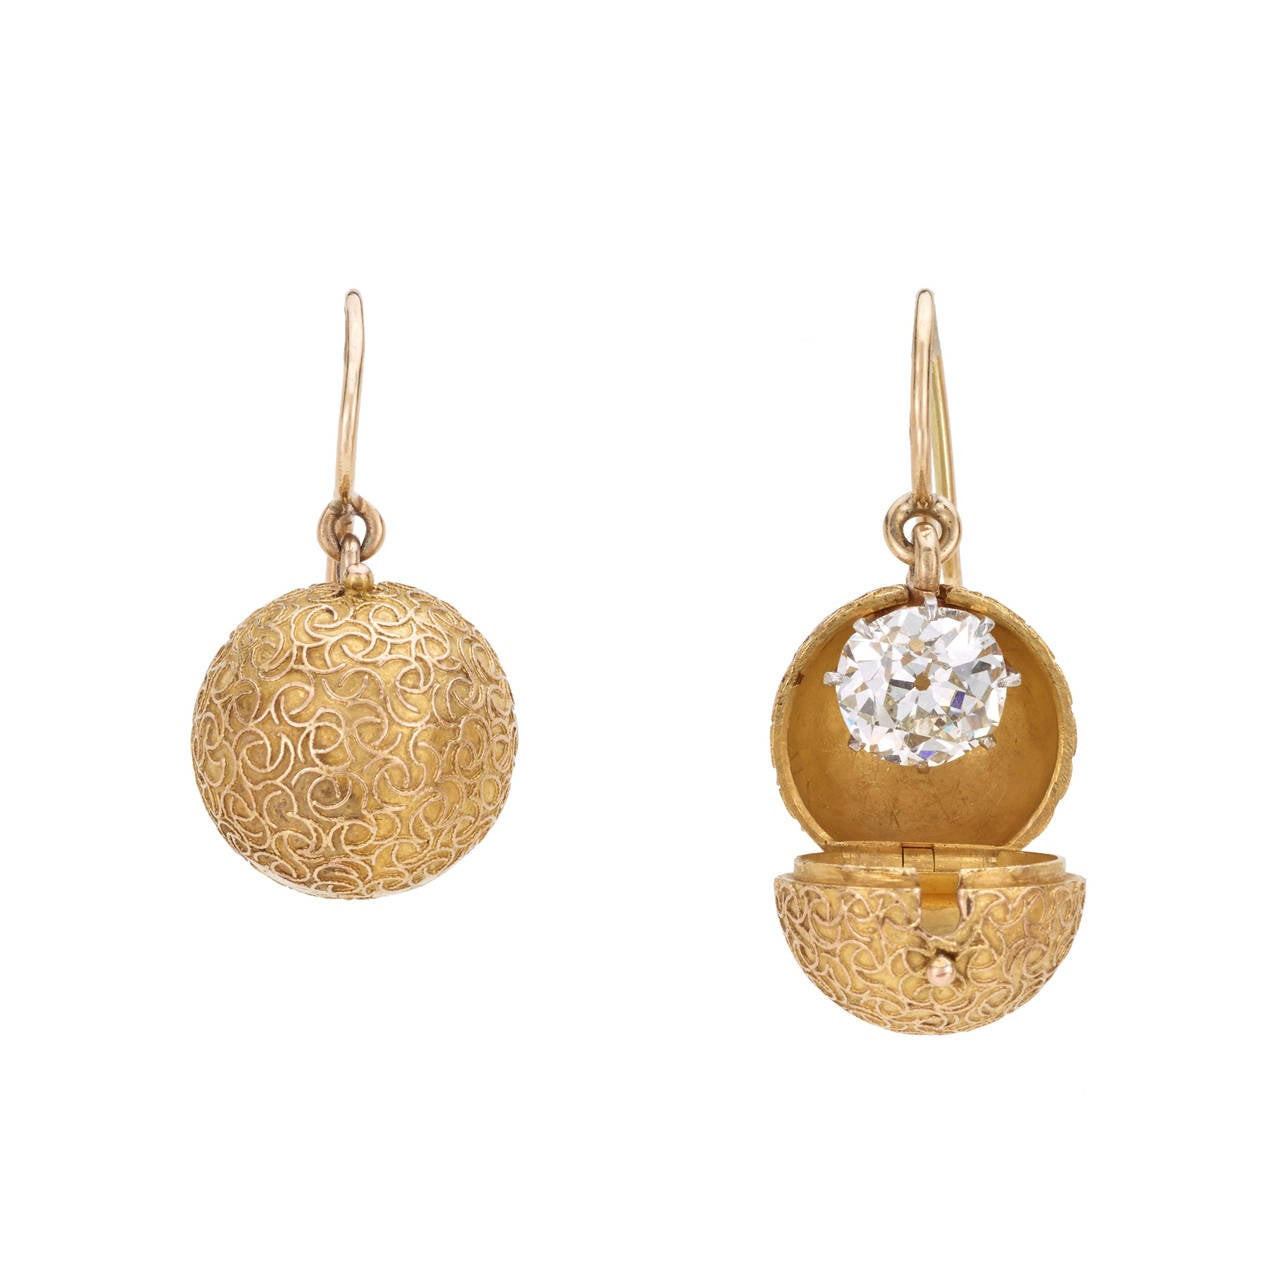 Past Era Victorian Dia Gold Dormeuse Earrings with Etruscan Revival Coach Cove For Sale